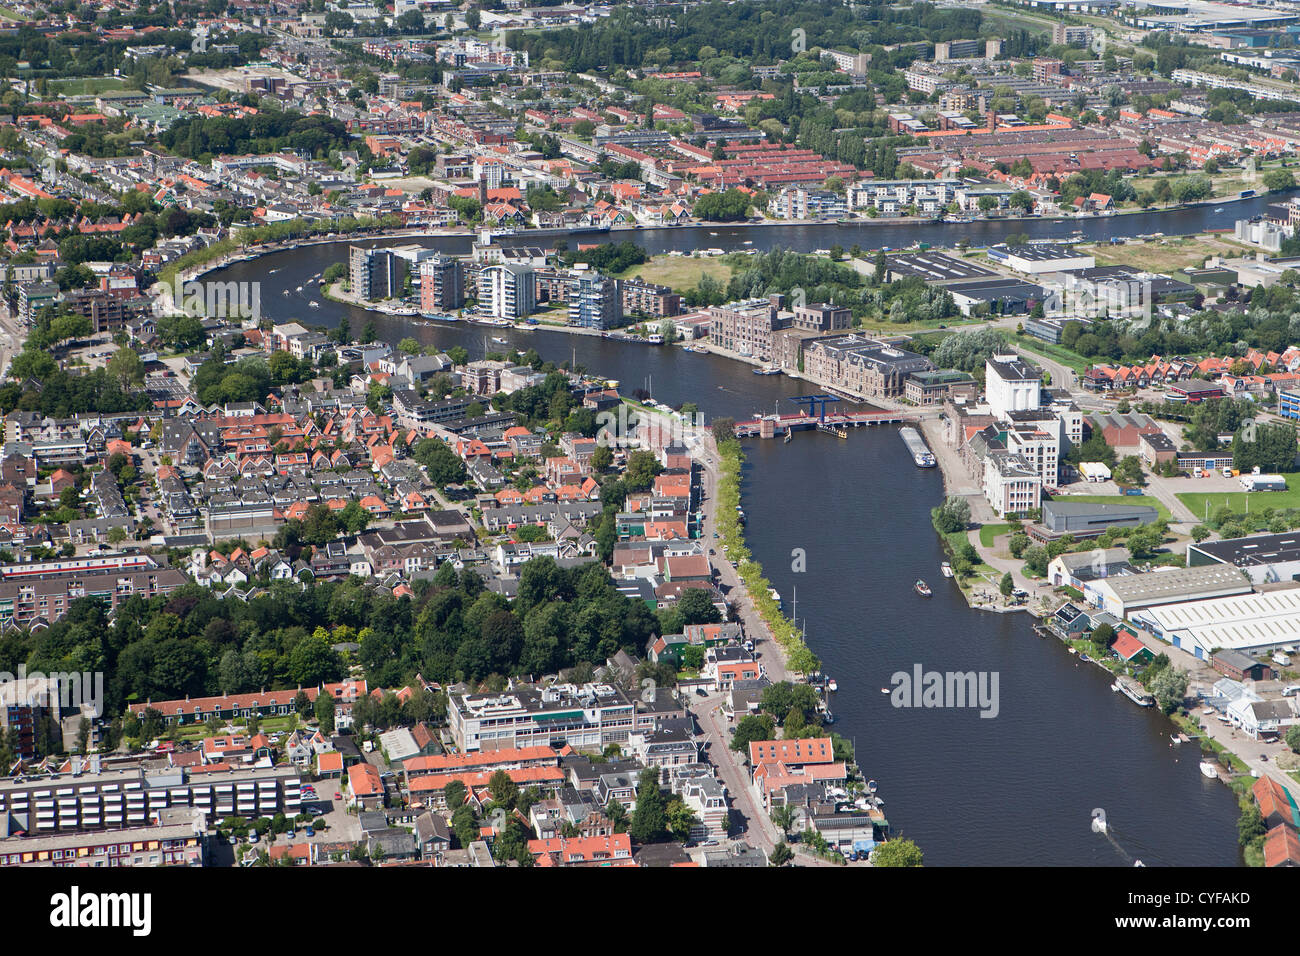 The Netherlands, Wormer (right) and Wormerveer (left), divided by Zaan river. Aerial. - Stock Image